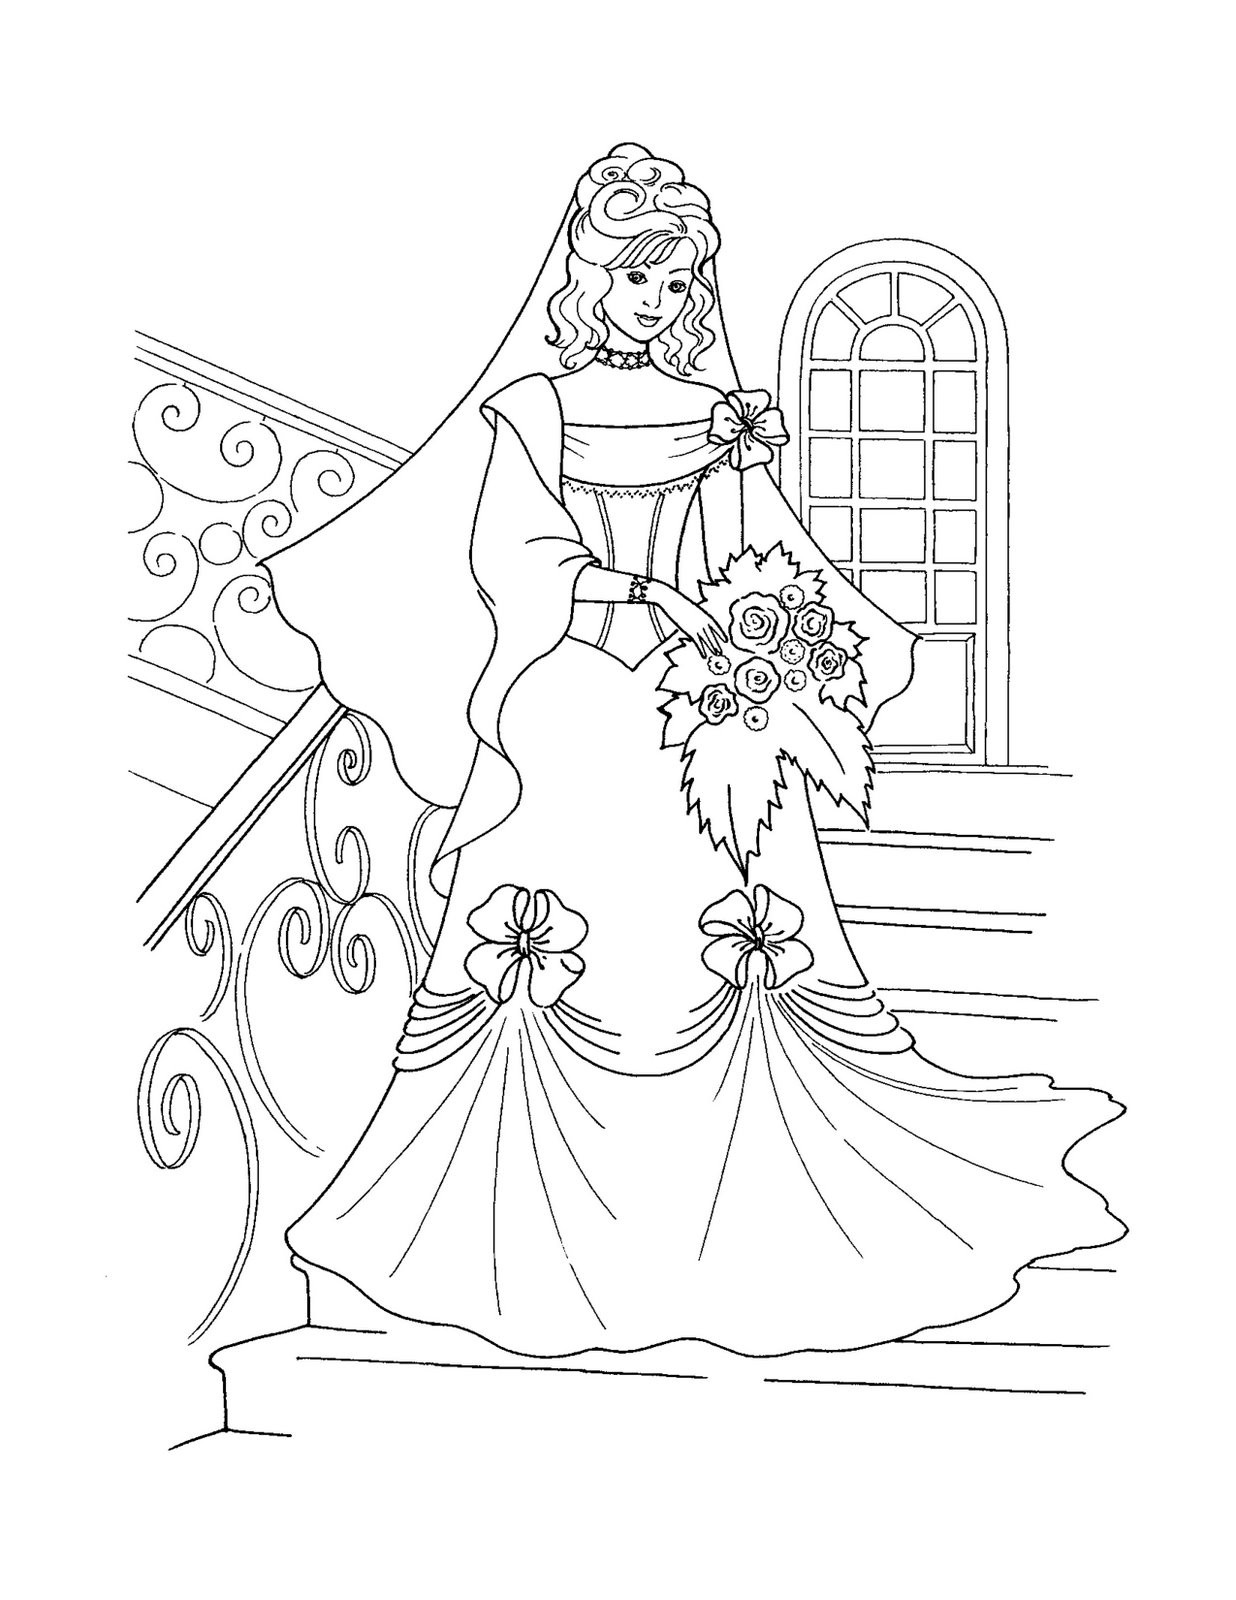 1236x1600 rapunzel castle coloring pages new free printable disney princess